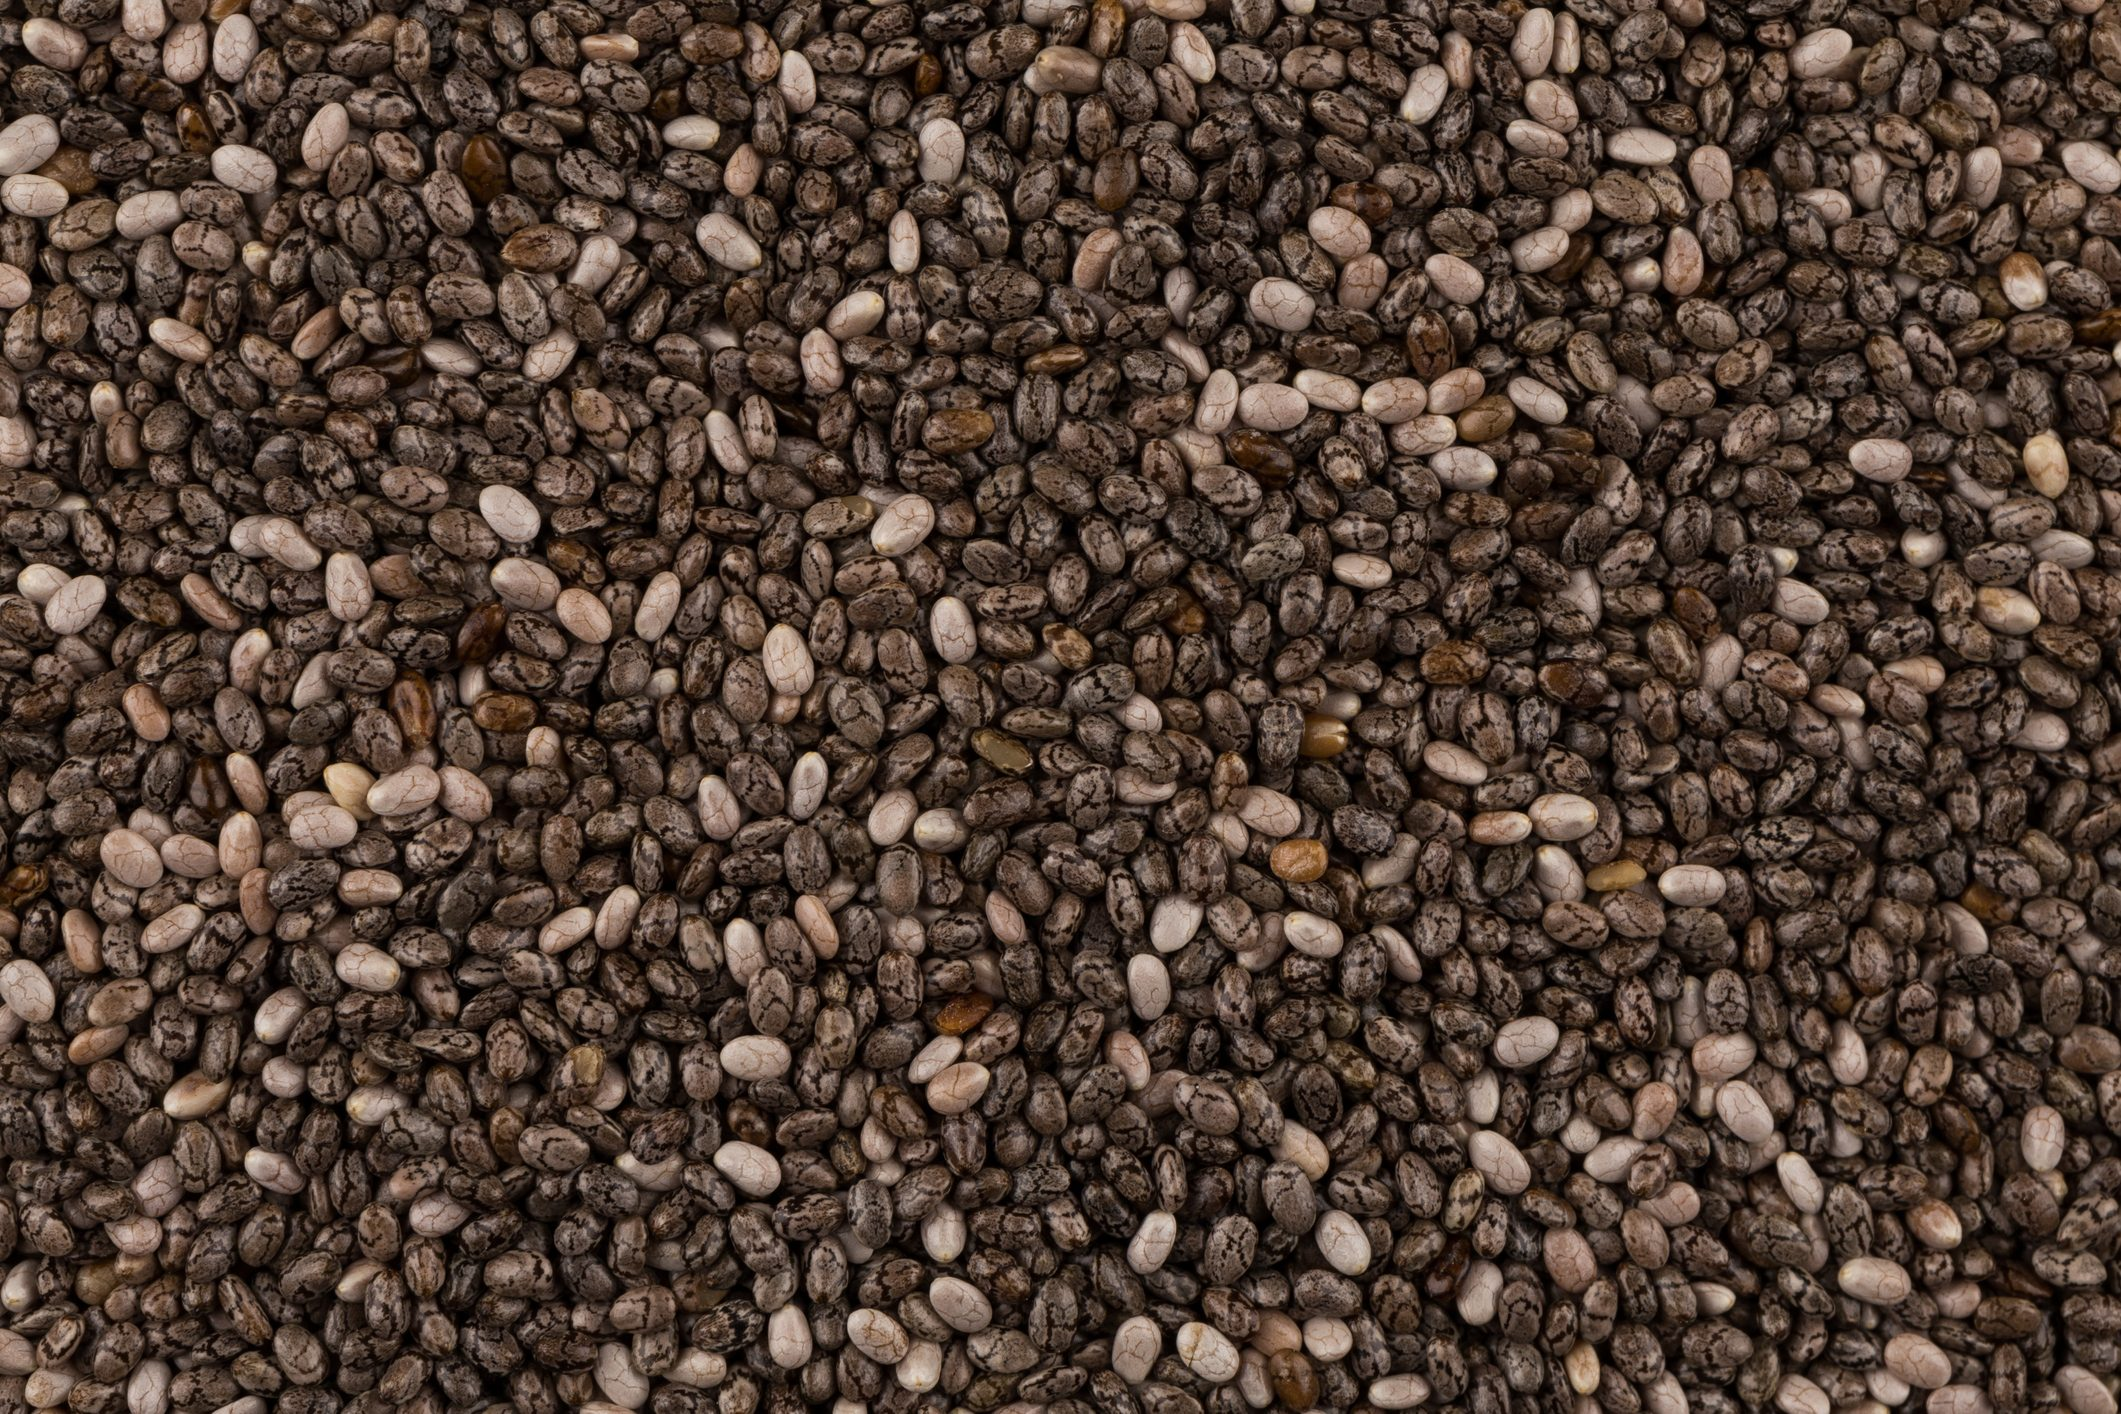 Top view on chia seeds. Can be used for background